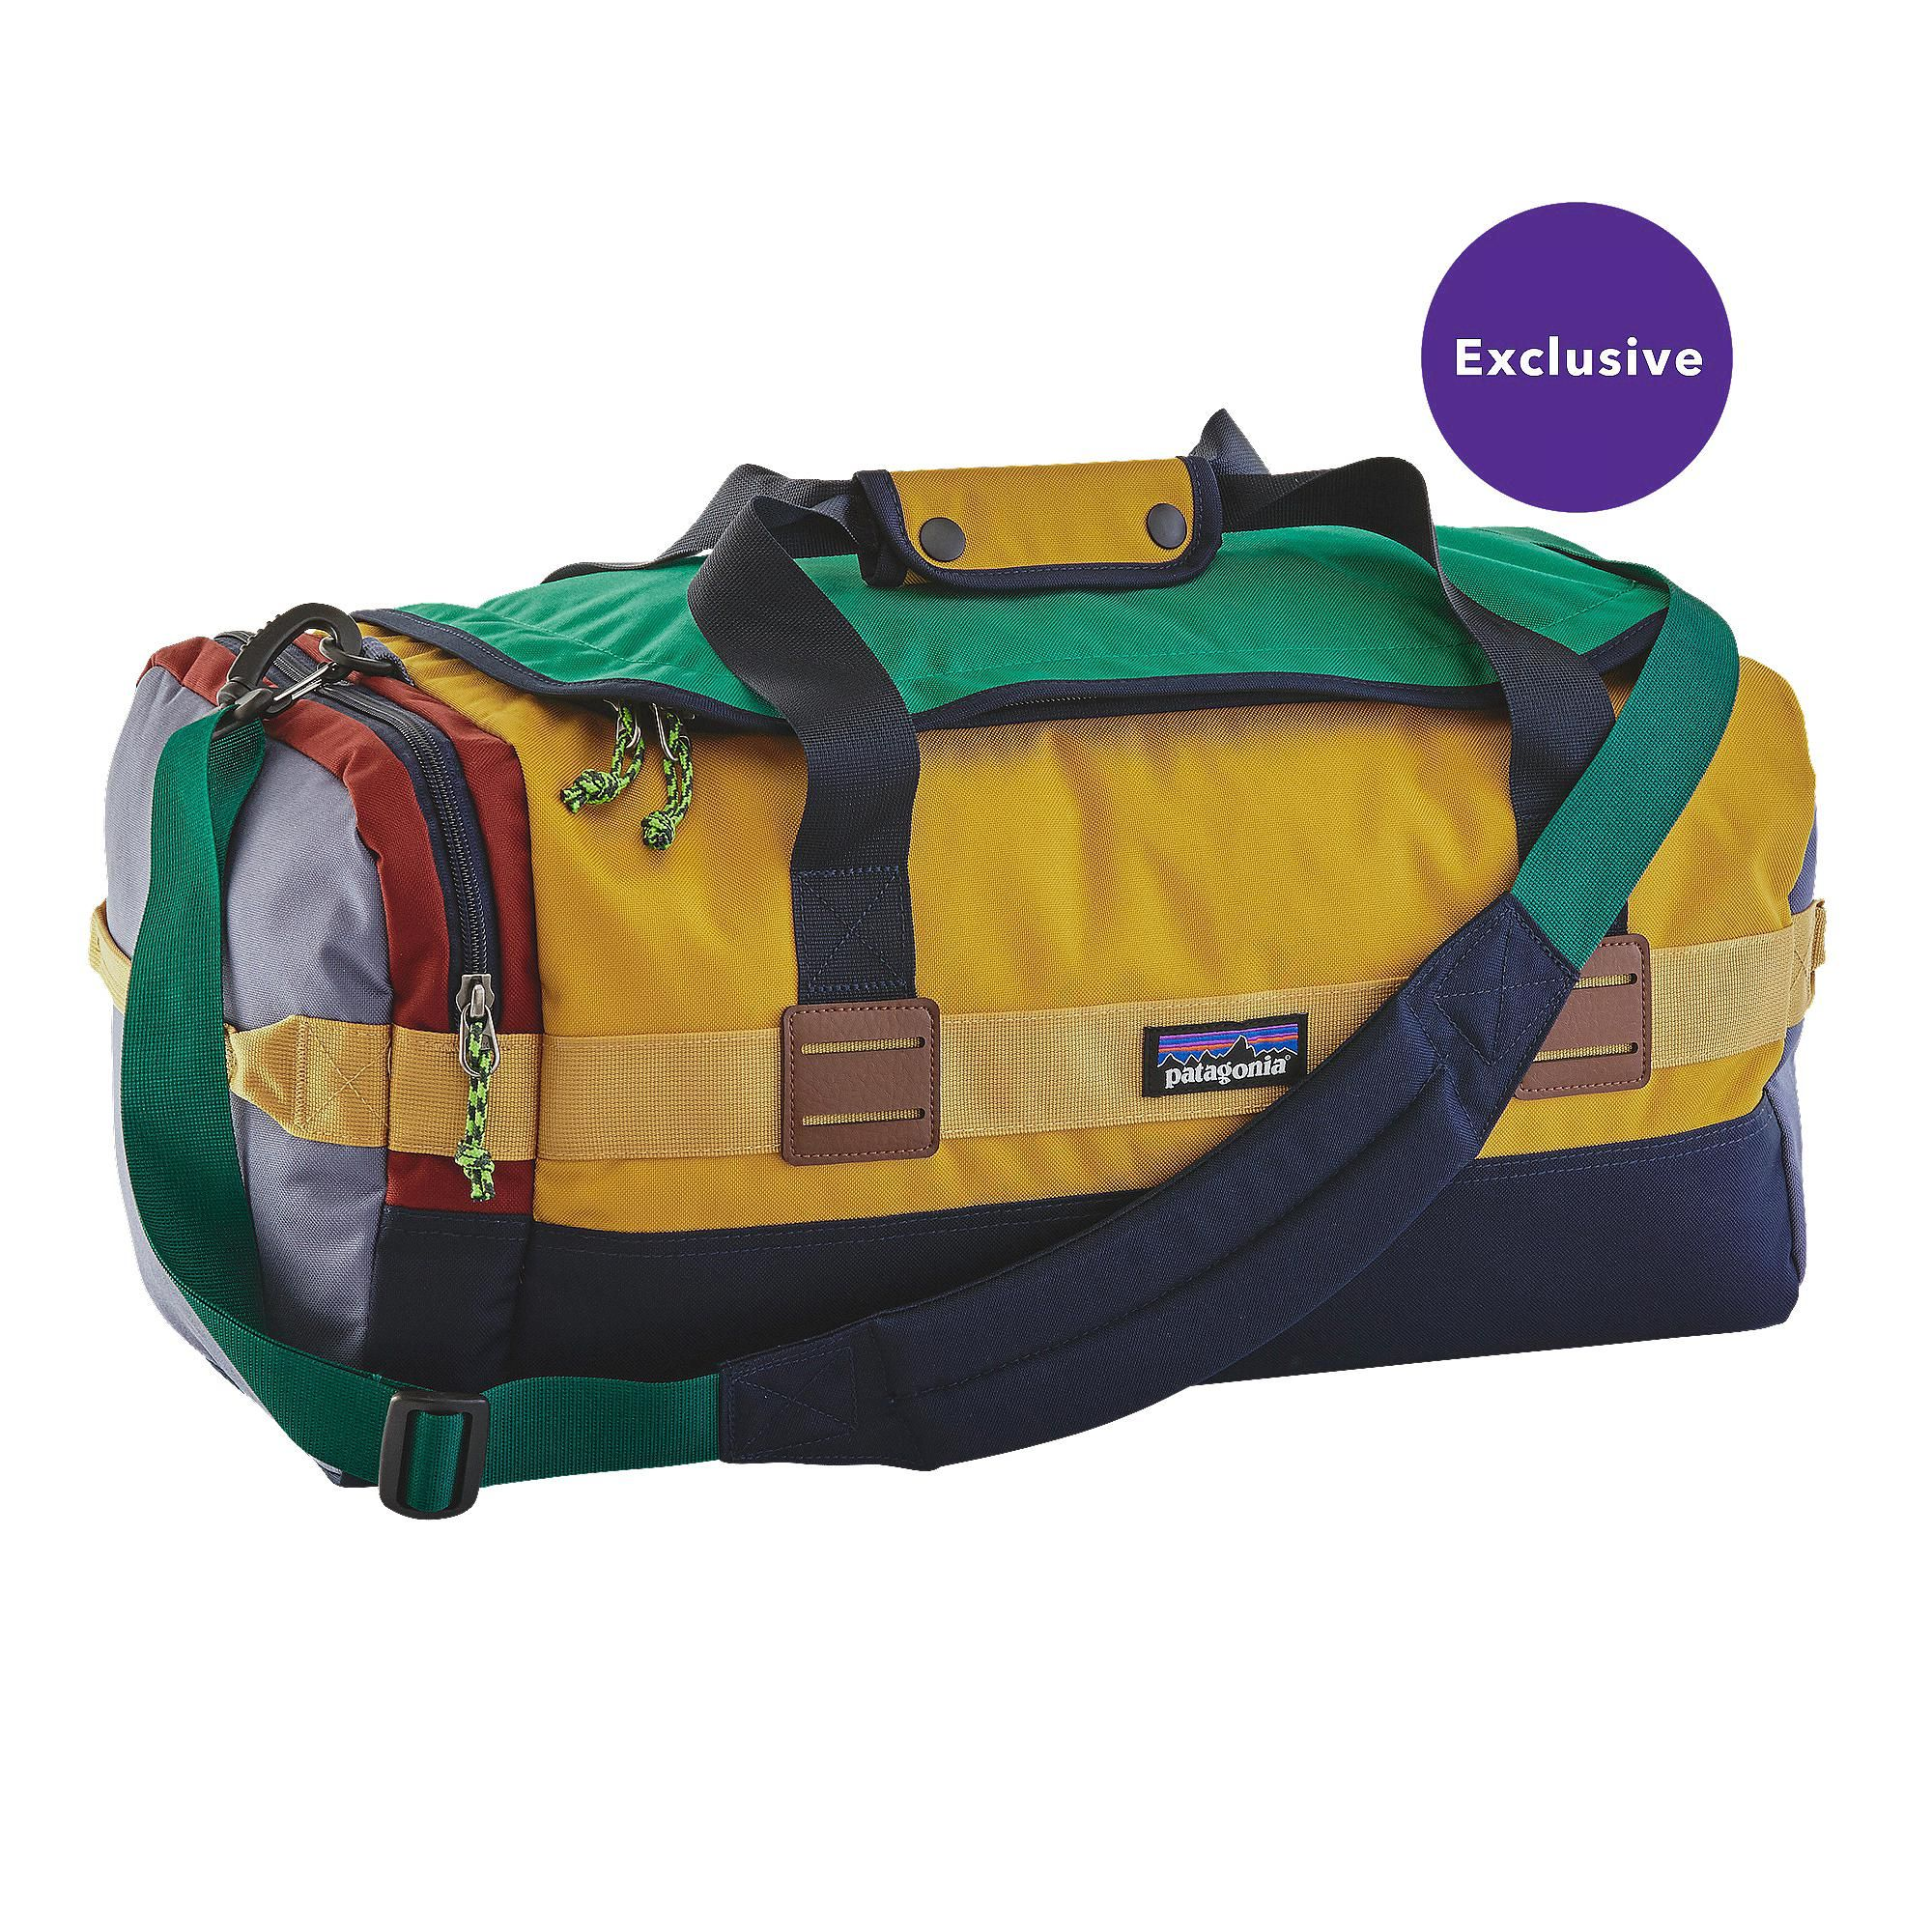 f58fbfe28c The Patagonia Arbor Duffel 30L is a classic duffel bag with a padded base  to protect your belongings and haul your gear. Check it out.